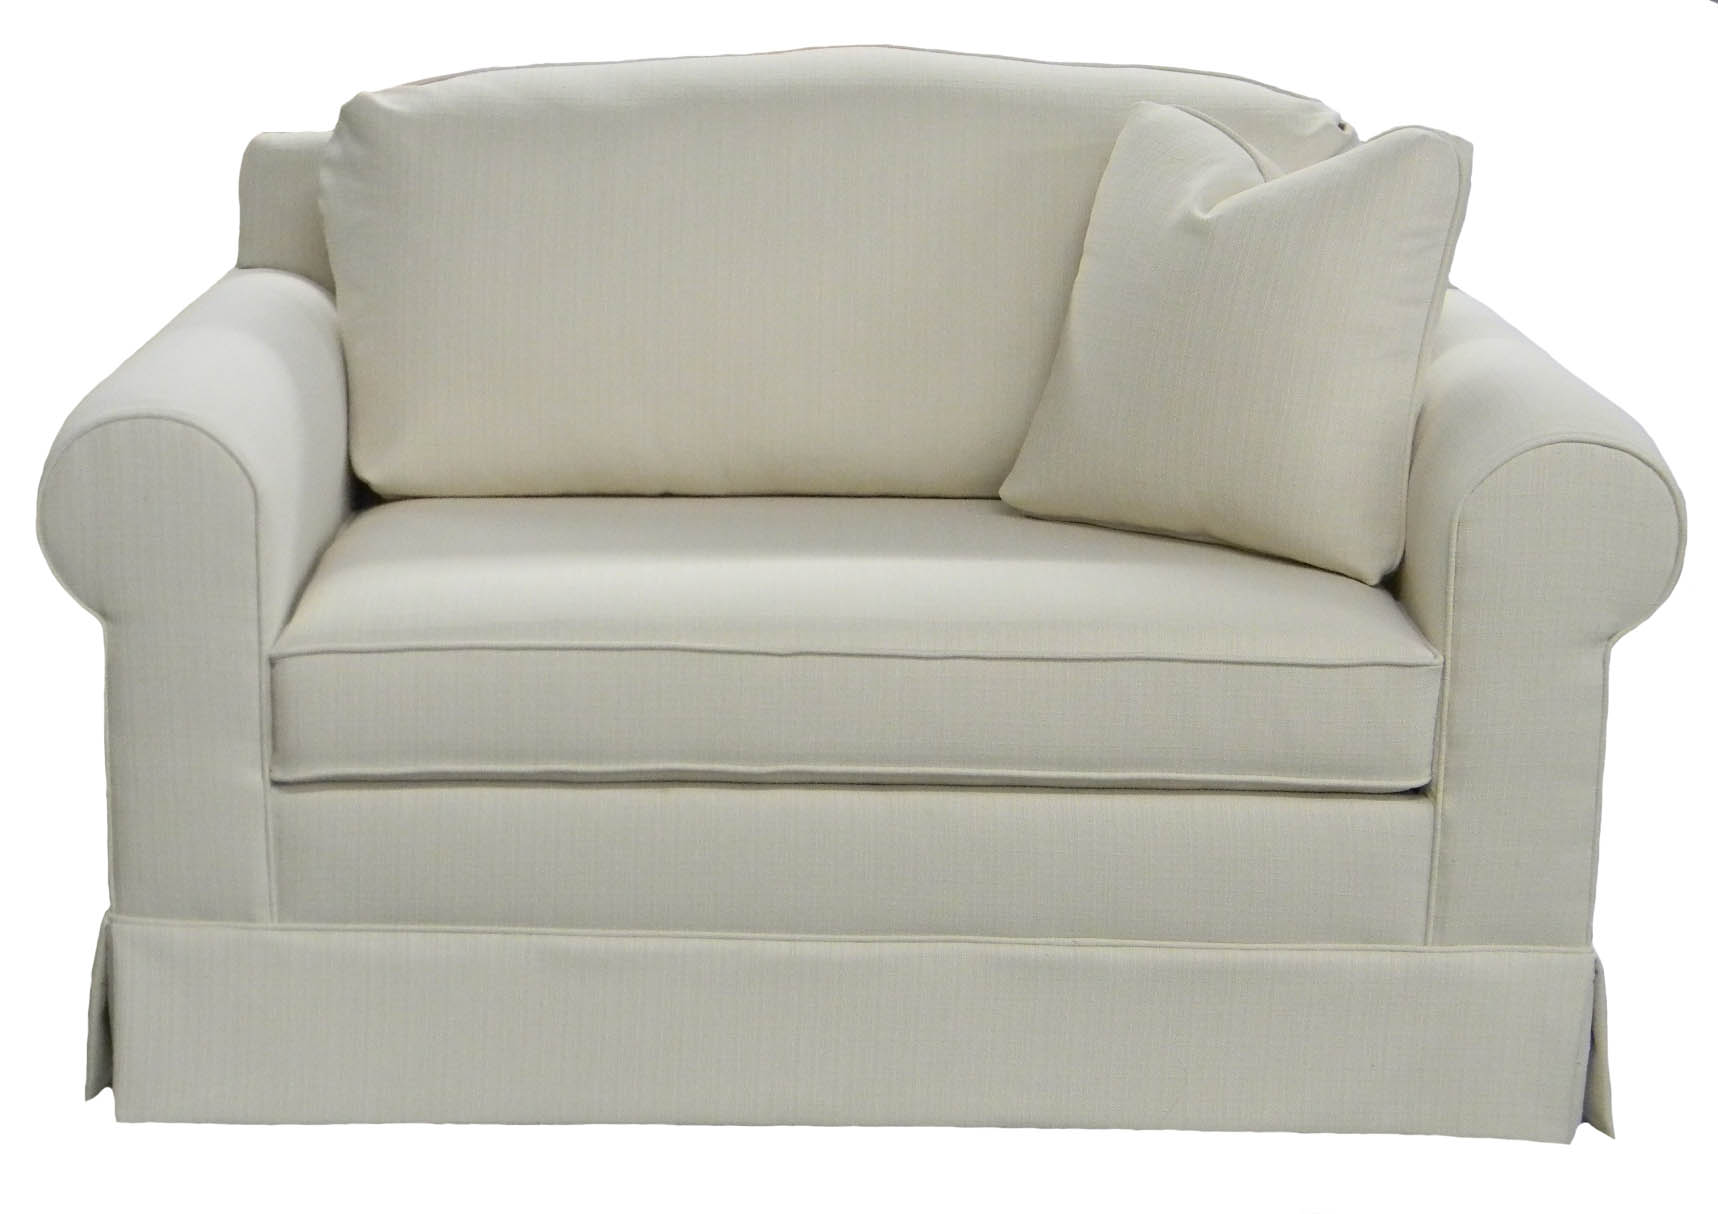 Oversized Sofa Chair Furniture Mesmerizing Oversized Chair Slipcover For Home